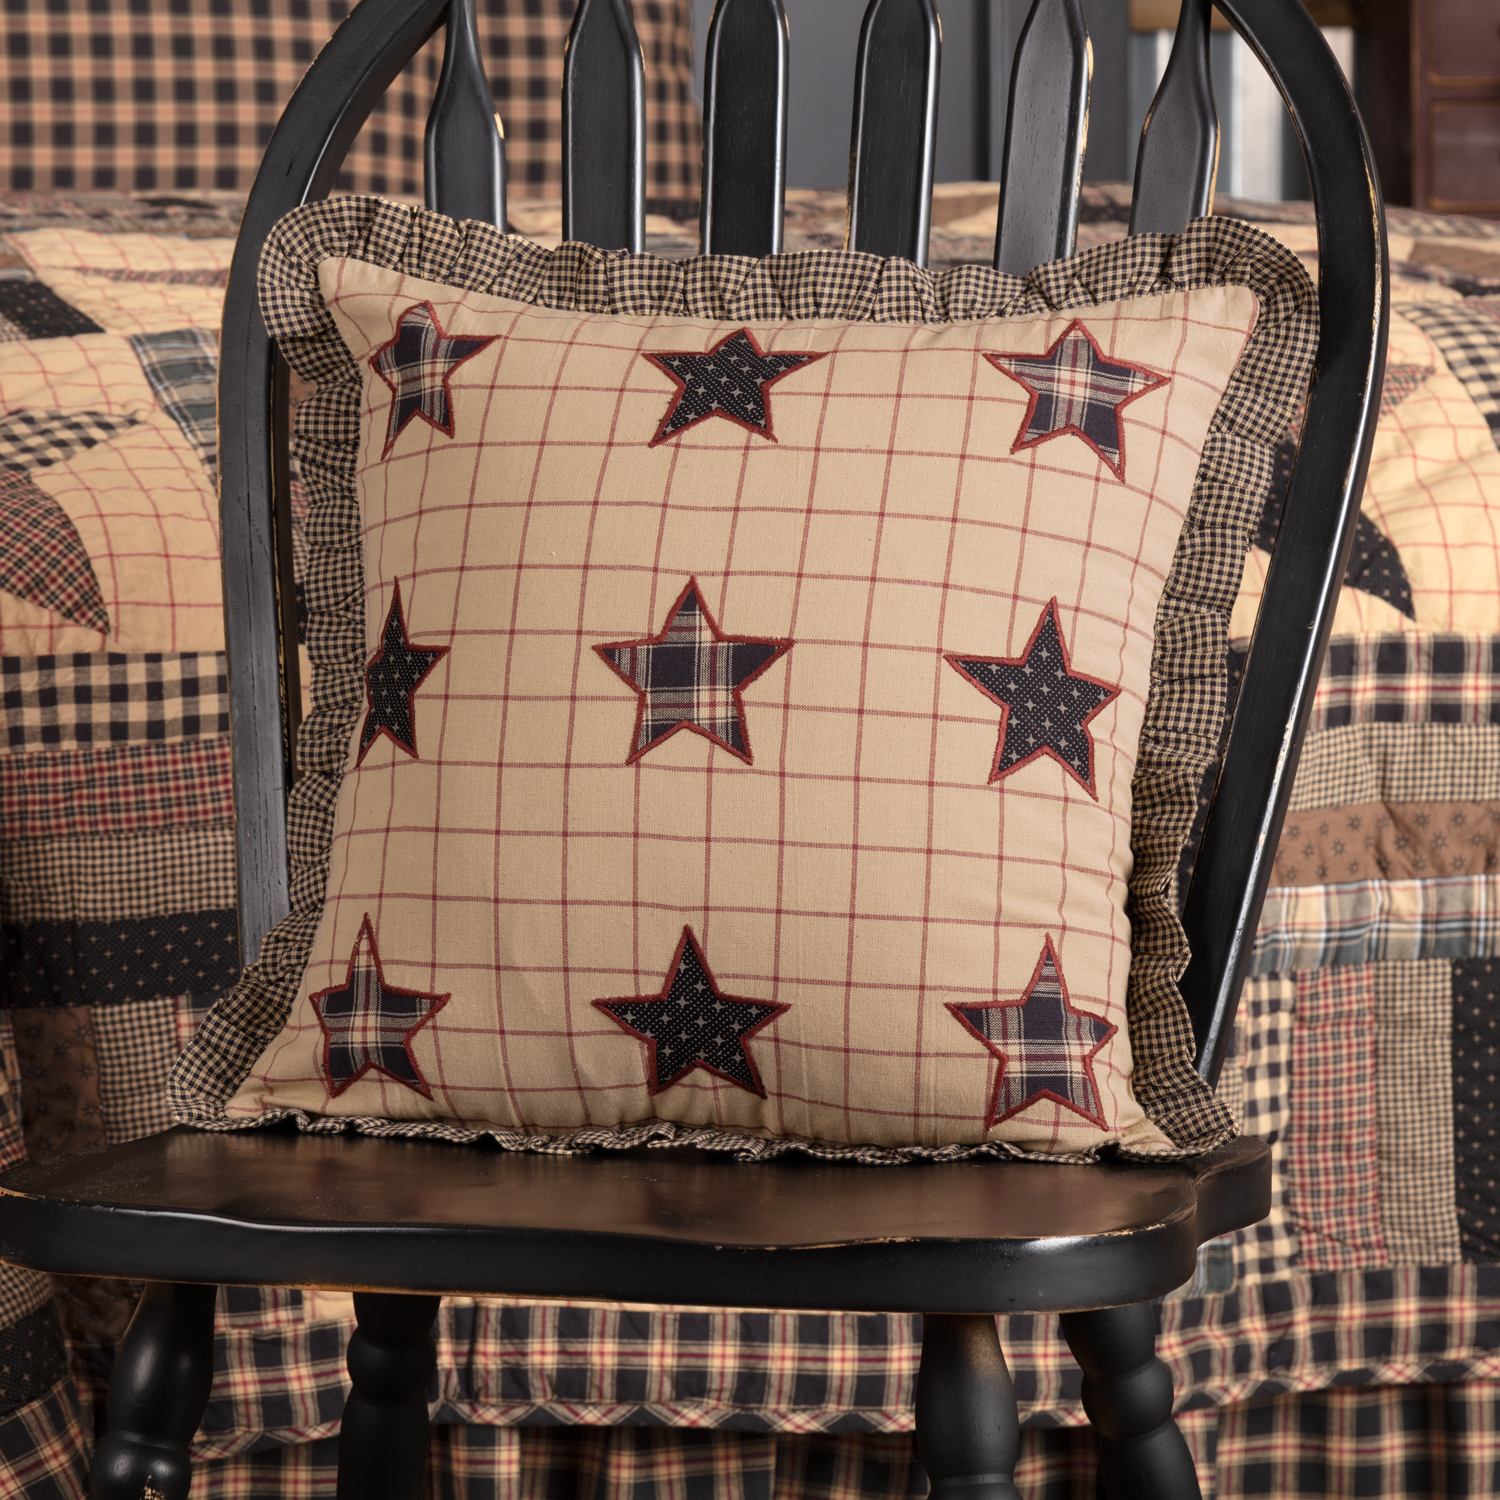 Soft Black Classic Country Bedding Denton Stars Cotton Appliqued Star Square Pillow (Pillow Cover, Pillow Insert)